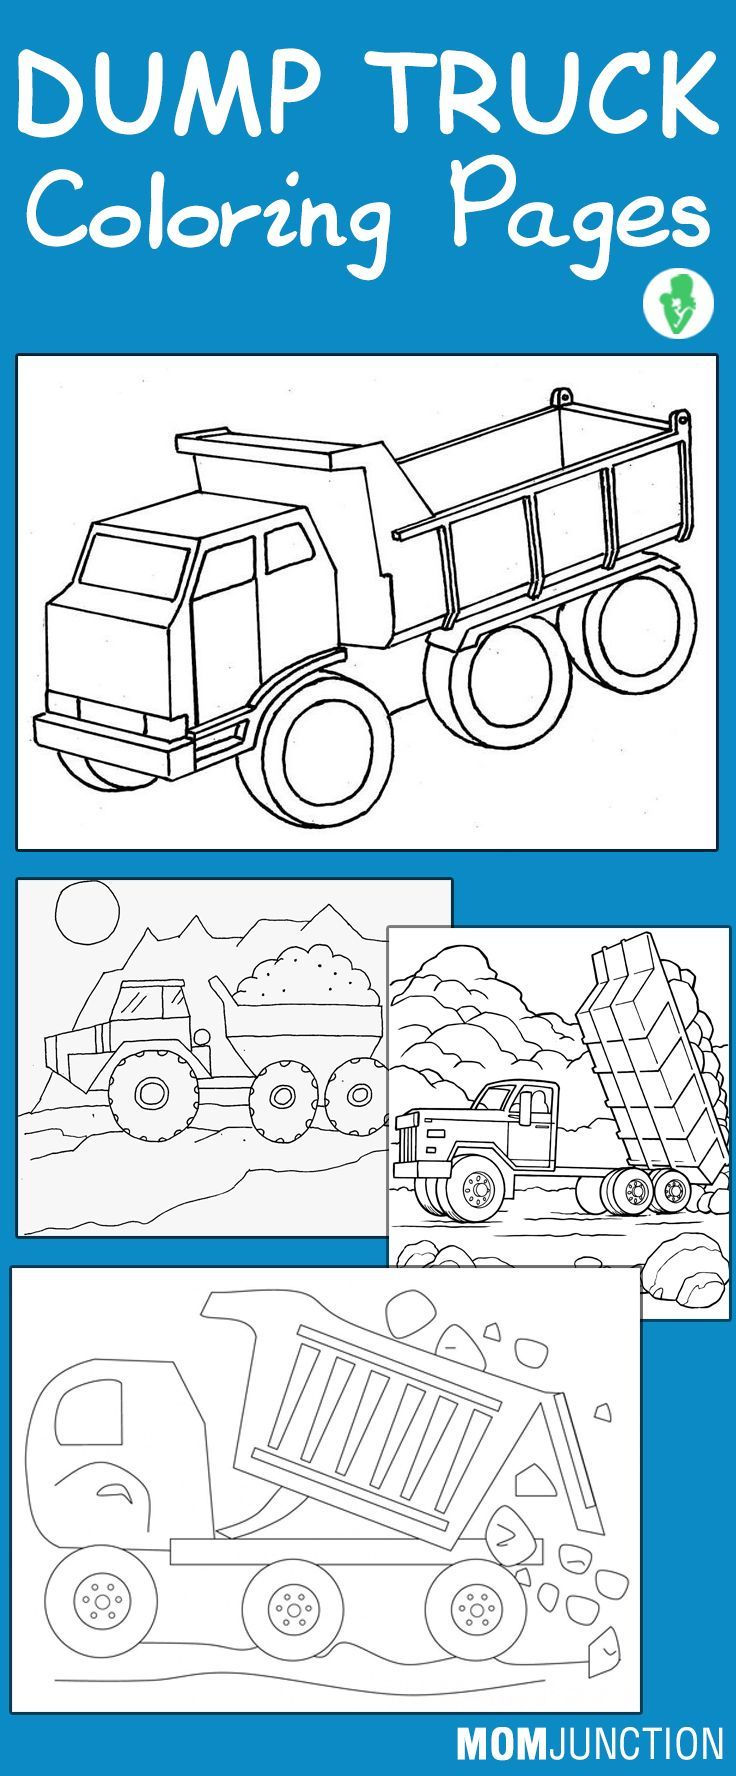 Coloring pages by numbers for kids of trucks - Top 10 Dump Truck Coloring Pages For Your Toddlers